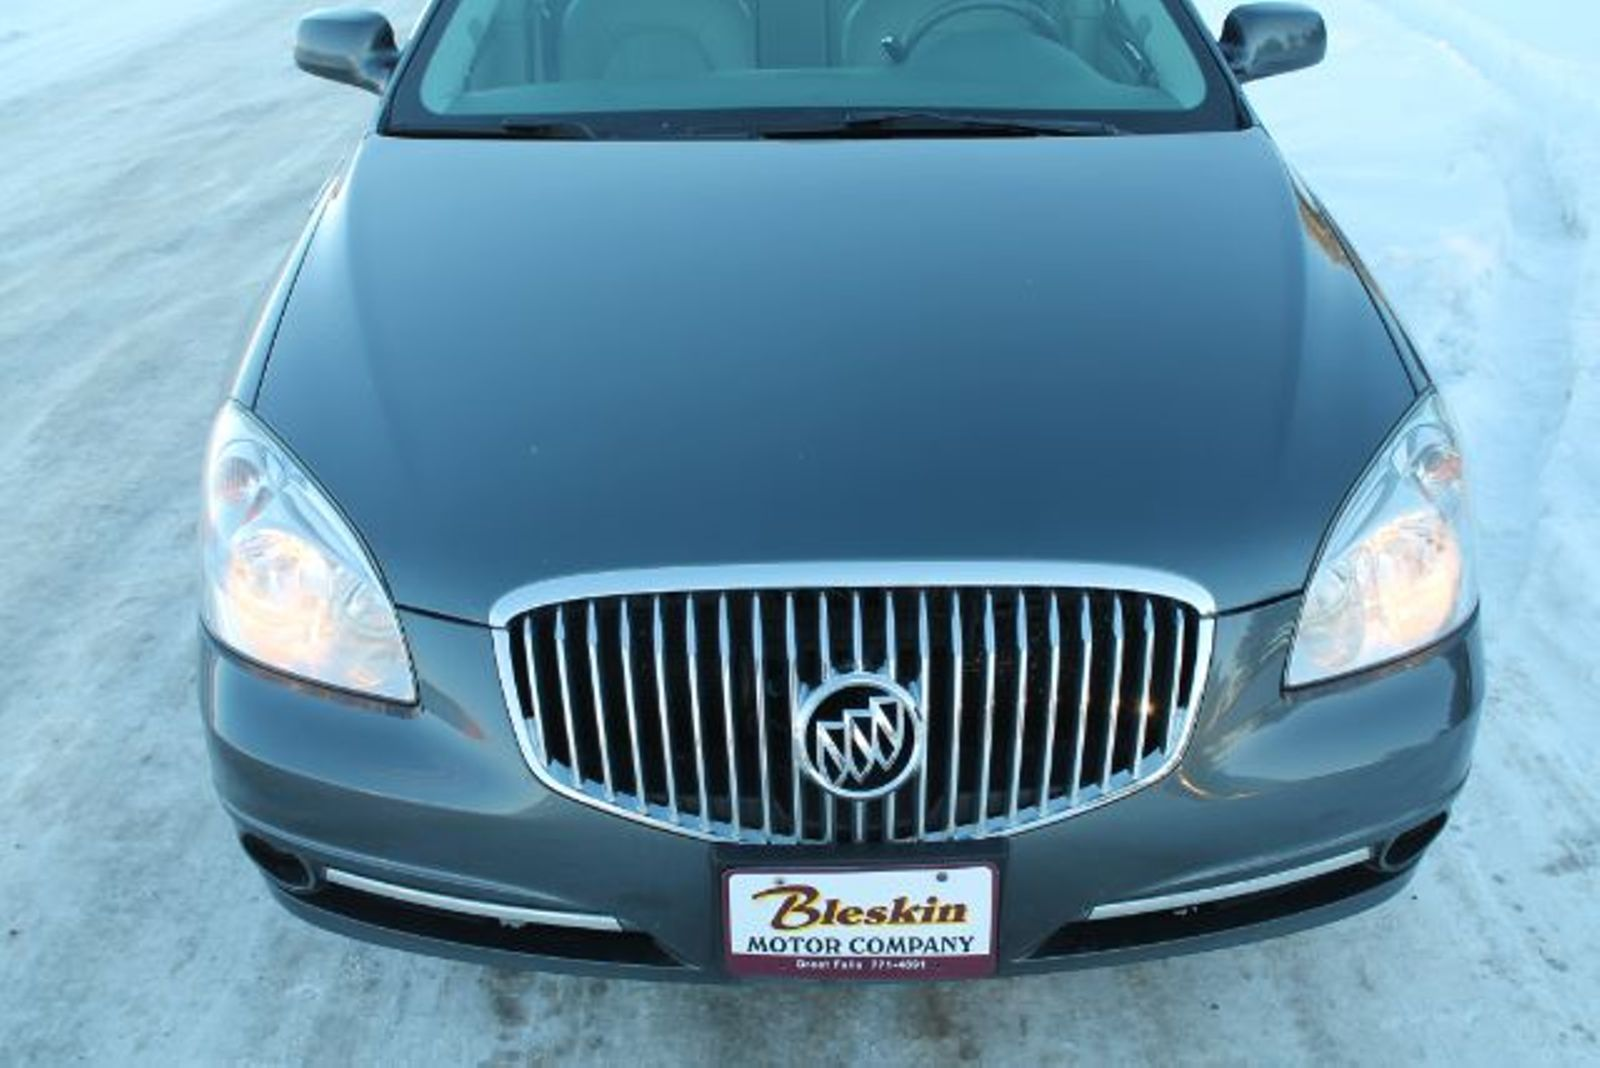 buick sedan worthy of gallery cxl exterior overview regal cars fwd lucerne picture cargurus pic turbo